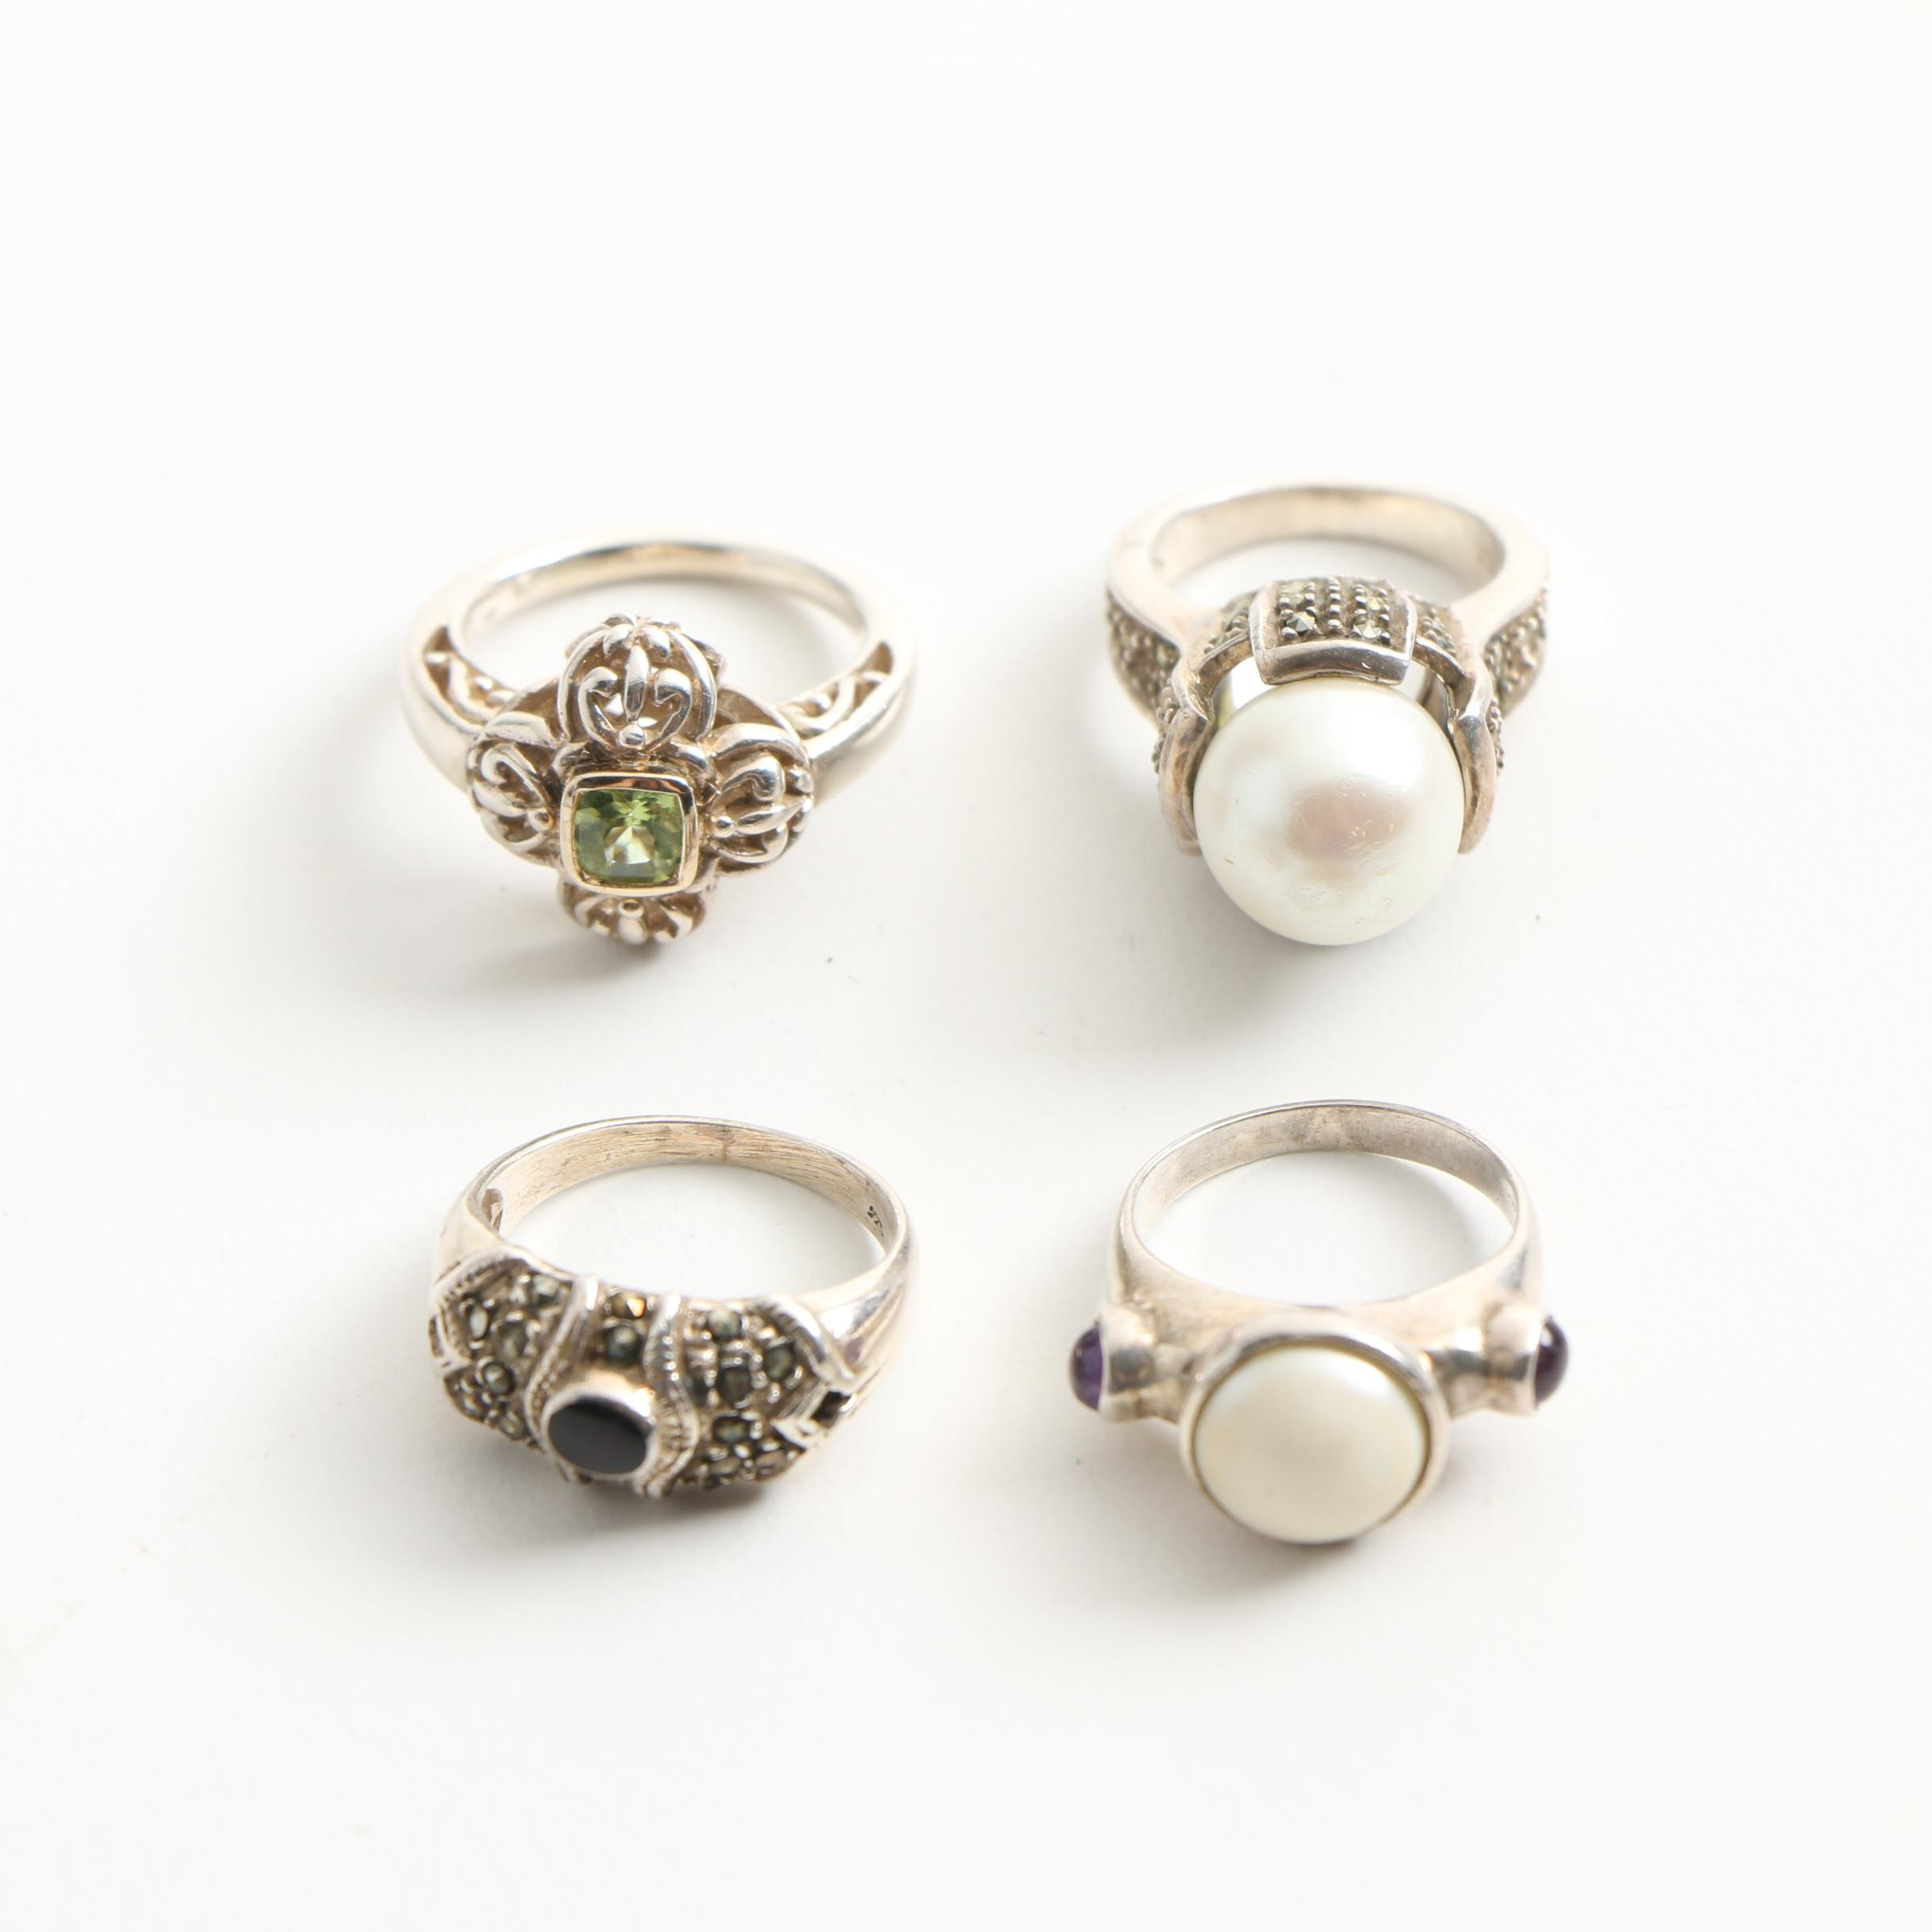 Selection of Sterling Silver Rings